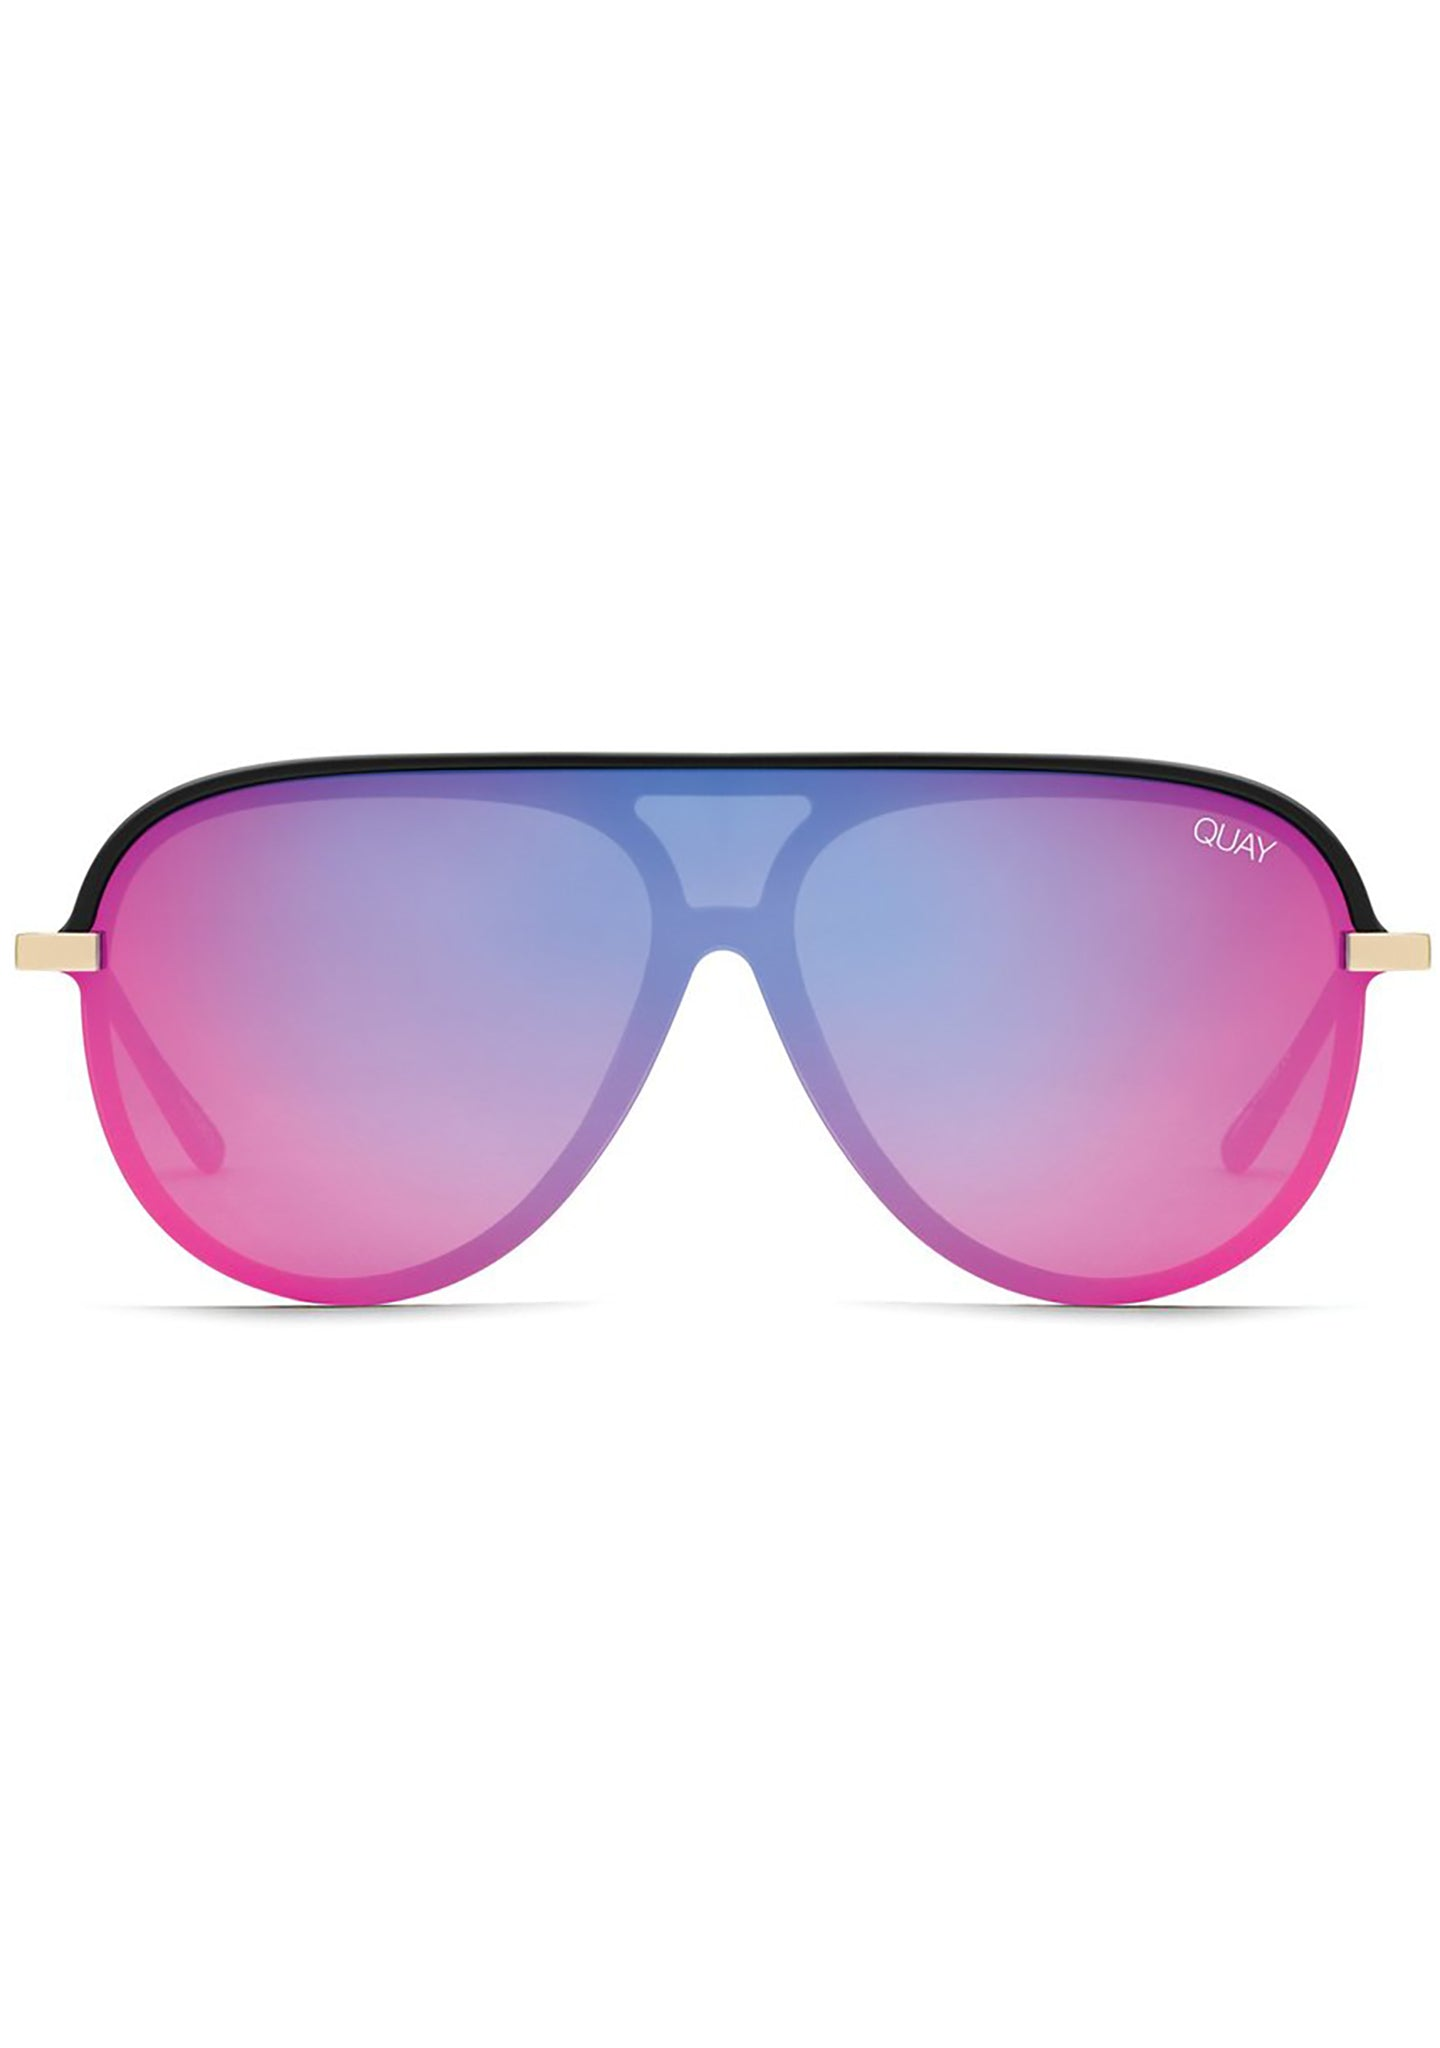 X JLO Empire Sunglasses in Black Pink